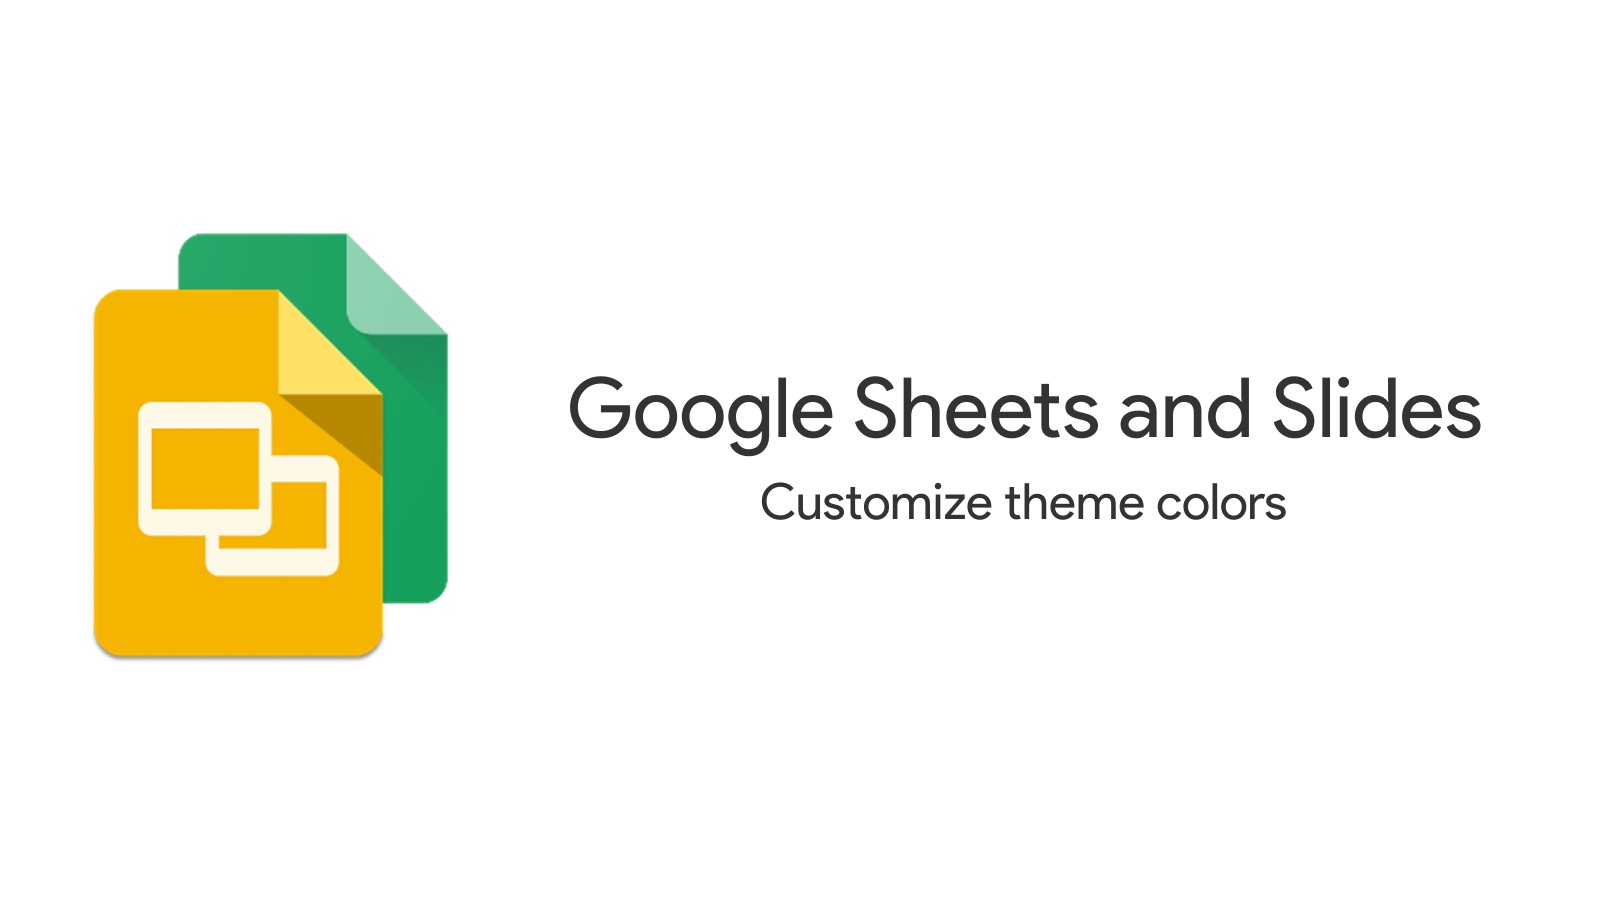 Google Sheets and Slides gain new color theme customization options